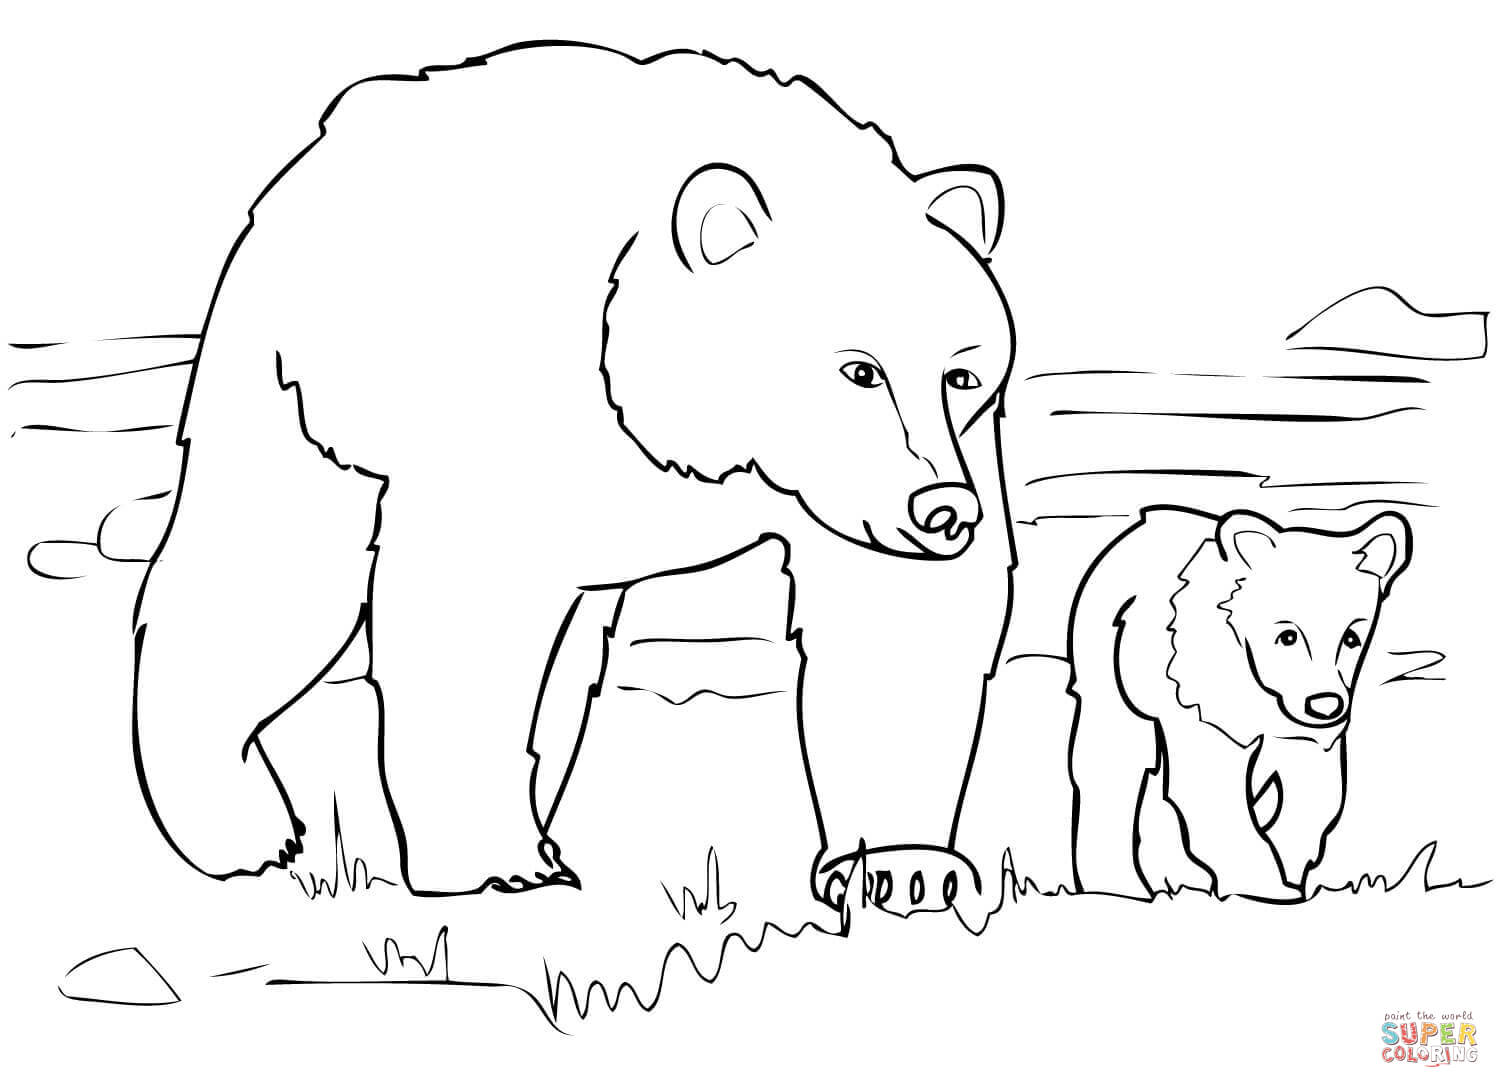 coloring pages of bears to print printable teddy bear coloring pages for kids cool2bkids of to coloring pages bears print